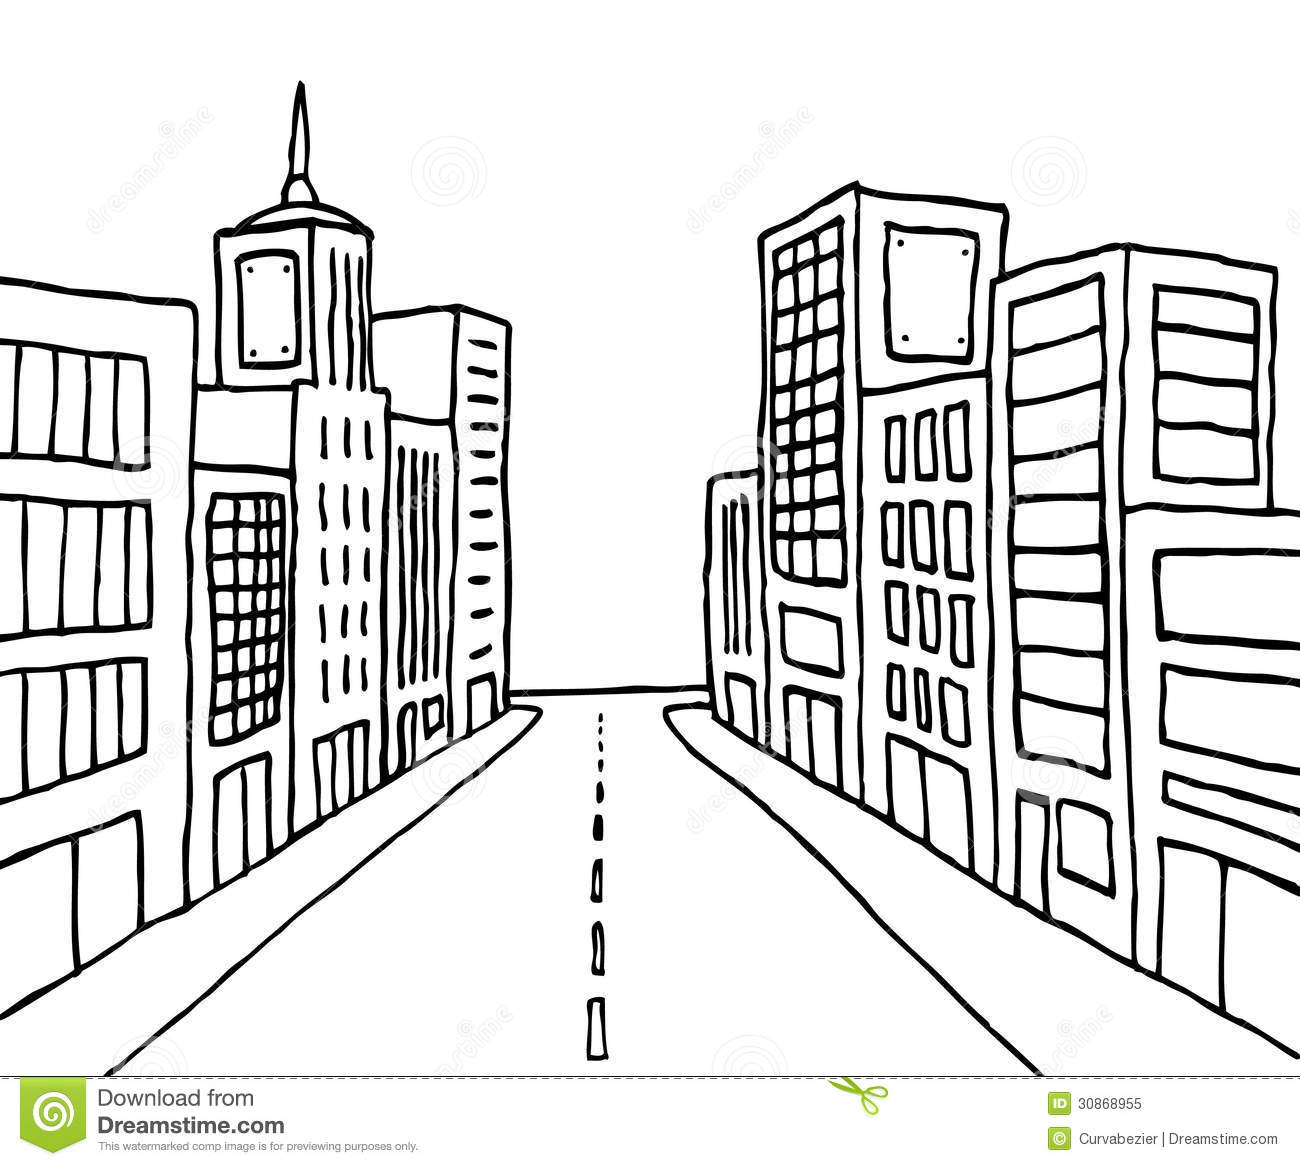 Color cartoon line city stock illustration. Illustration of point ...